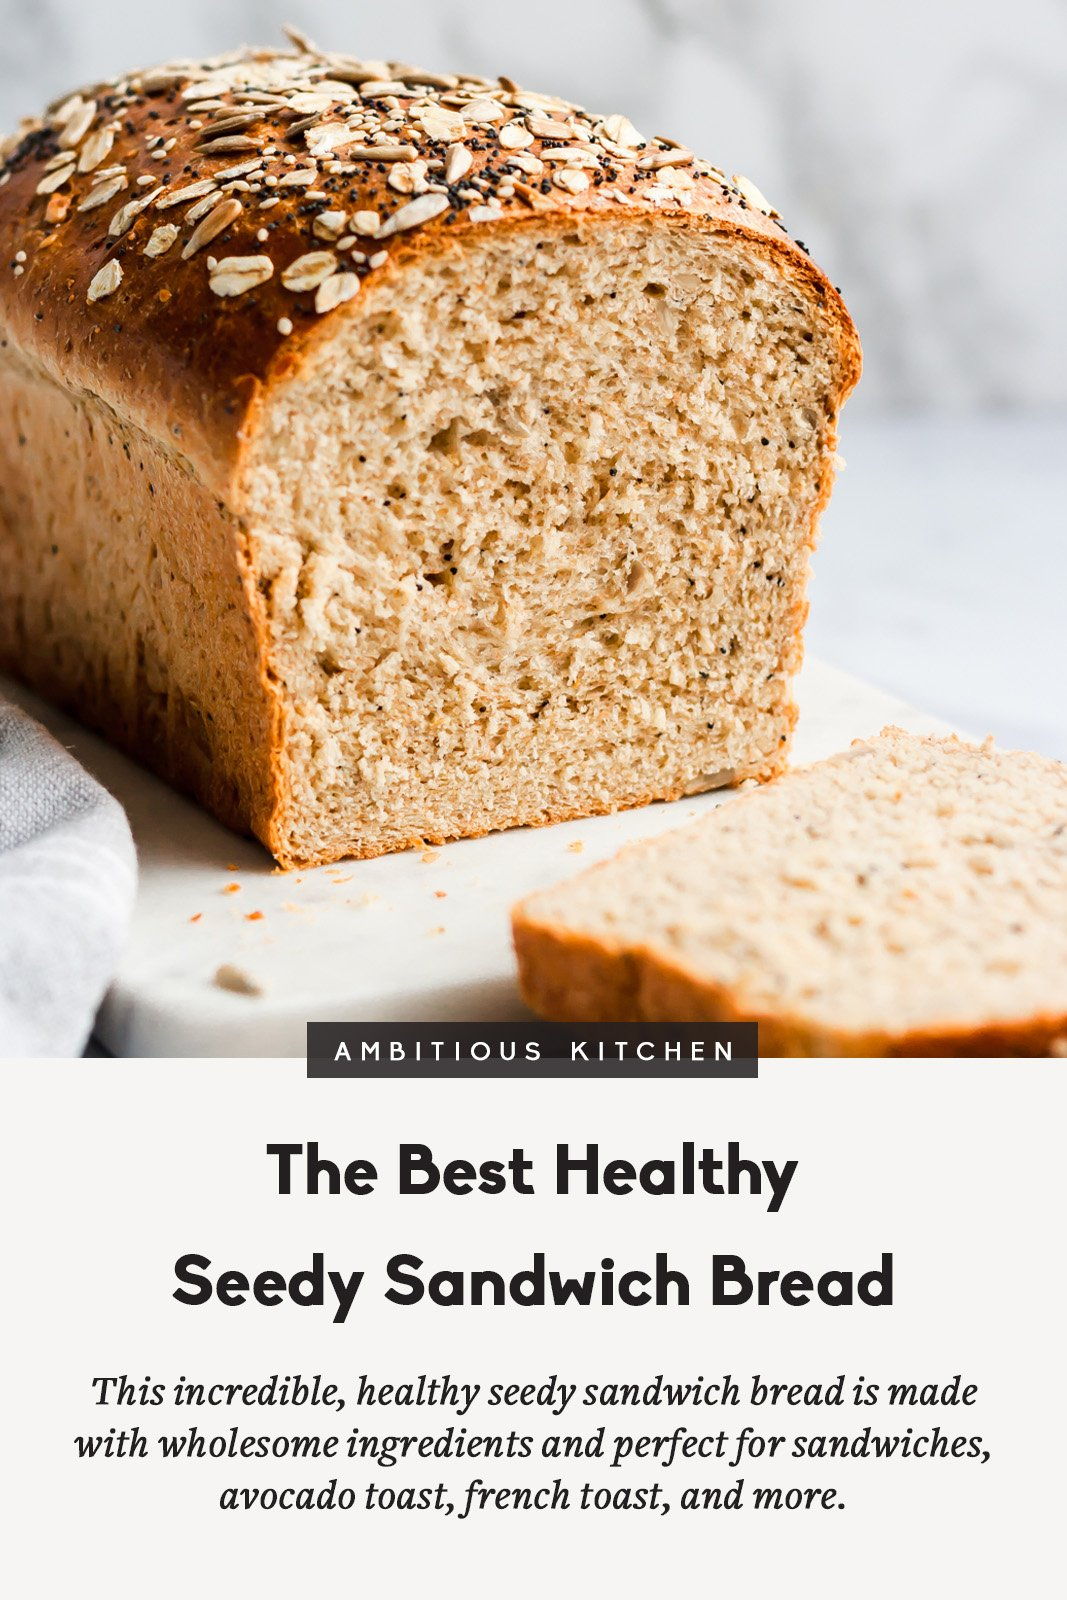 homemade healthy sandwich bread with text underneath